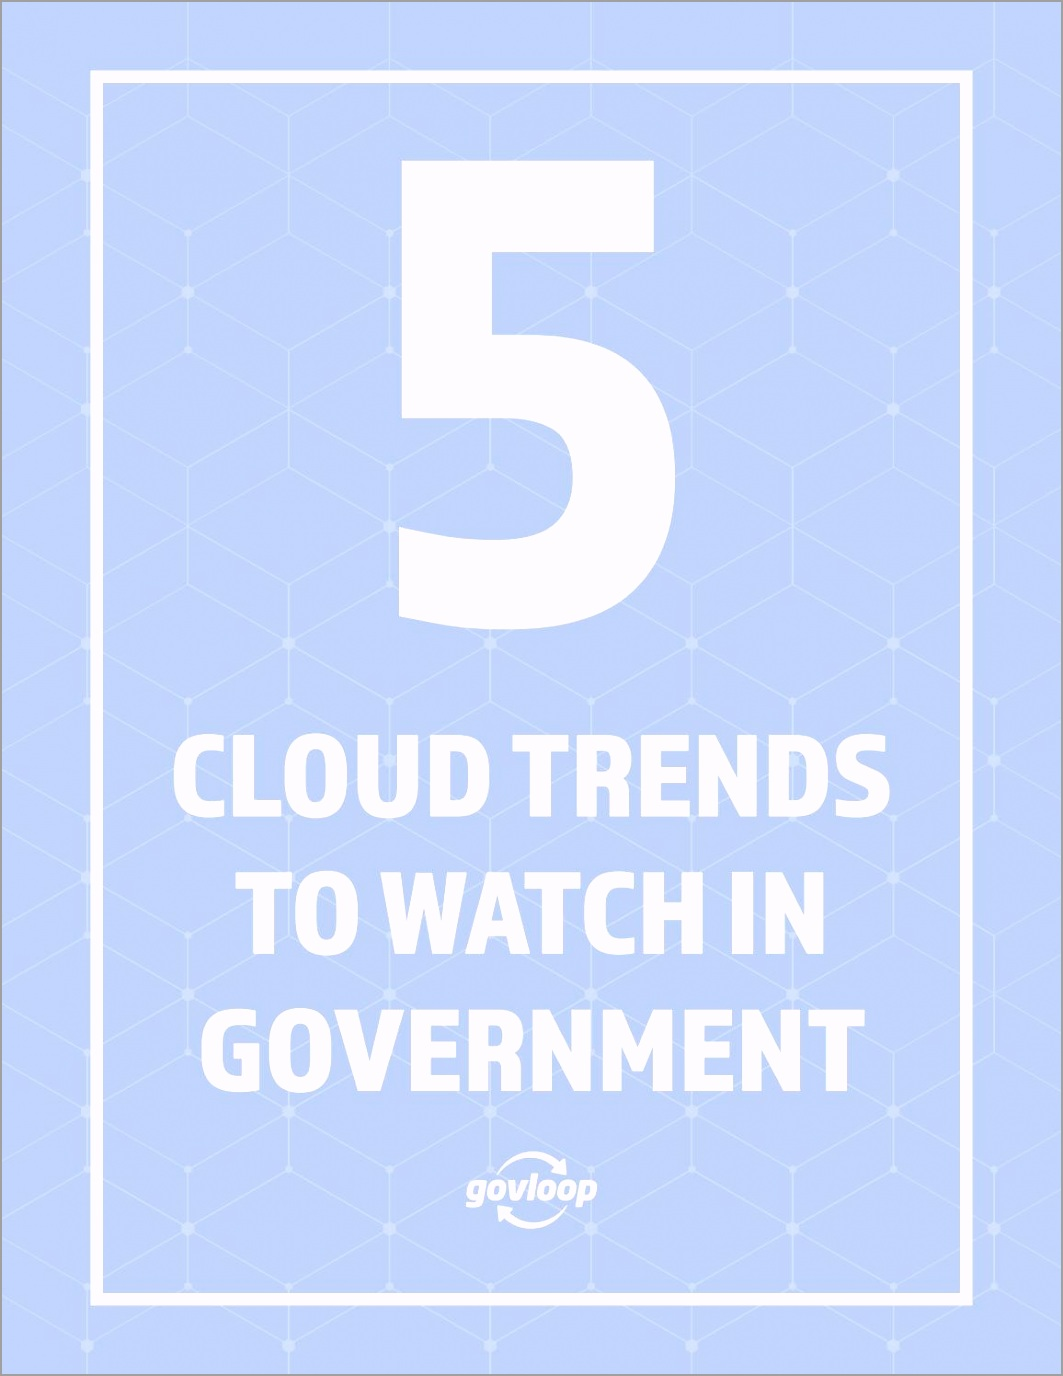 5 cloud trends to watch in governme uetwt